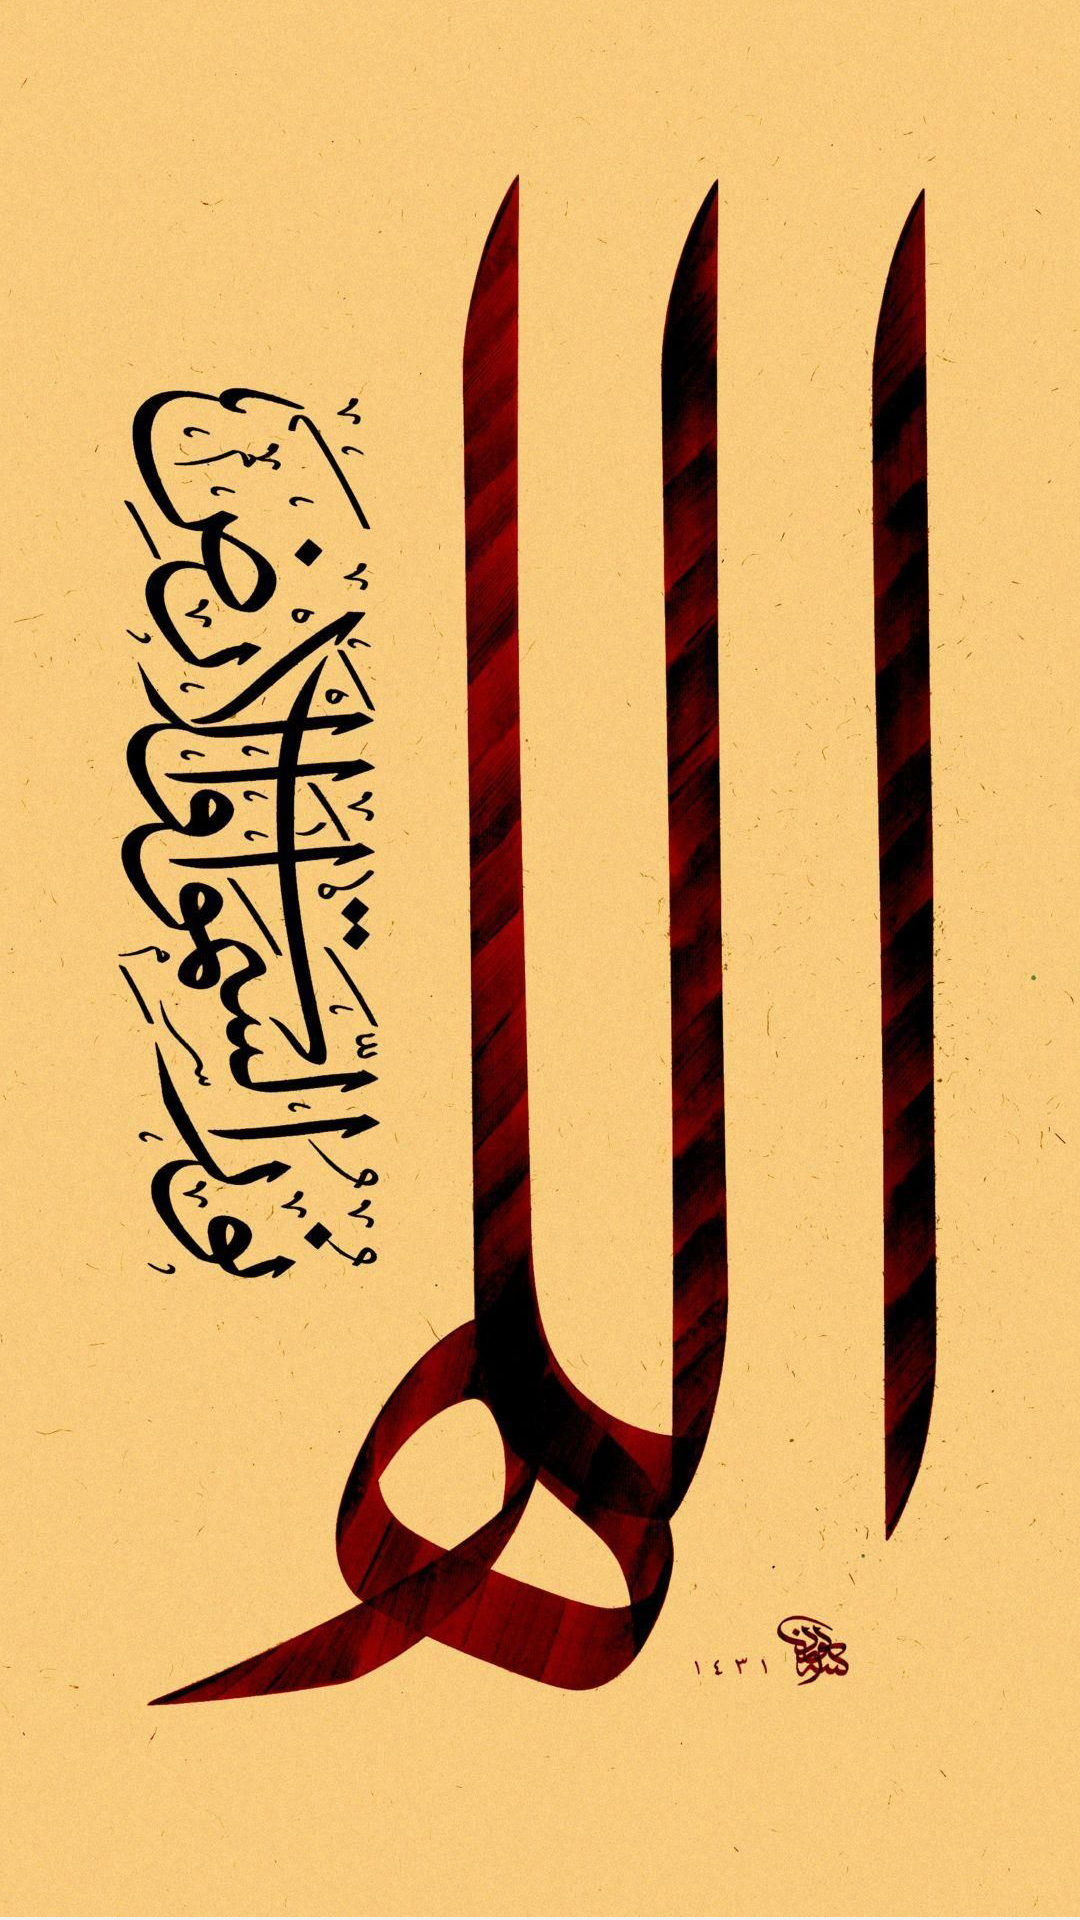 Best Islamic Wallpaper for 5 inch Mobile Phone 4 of 7 ...